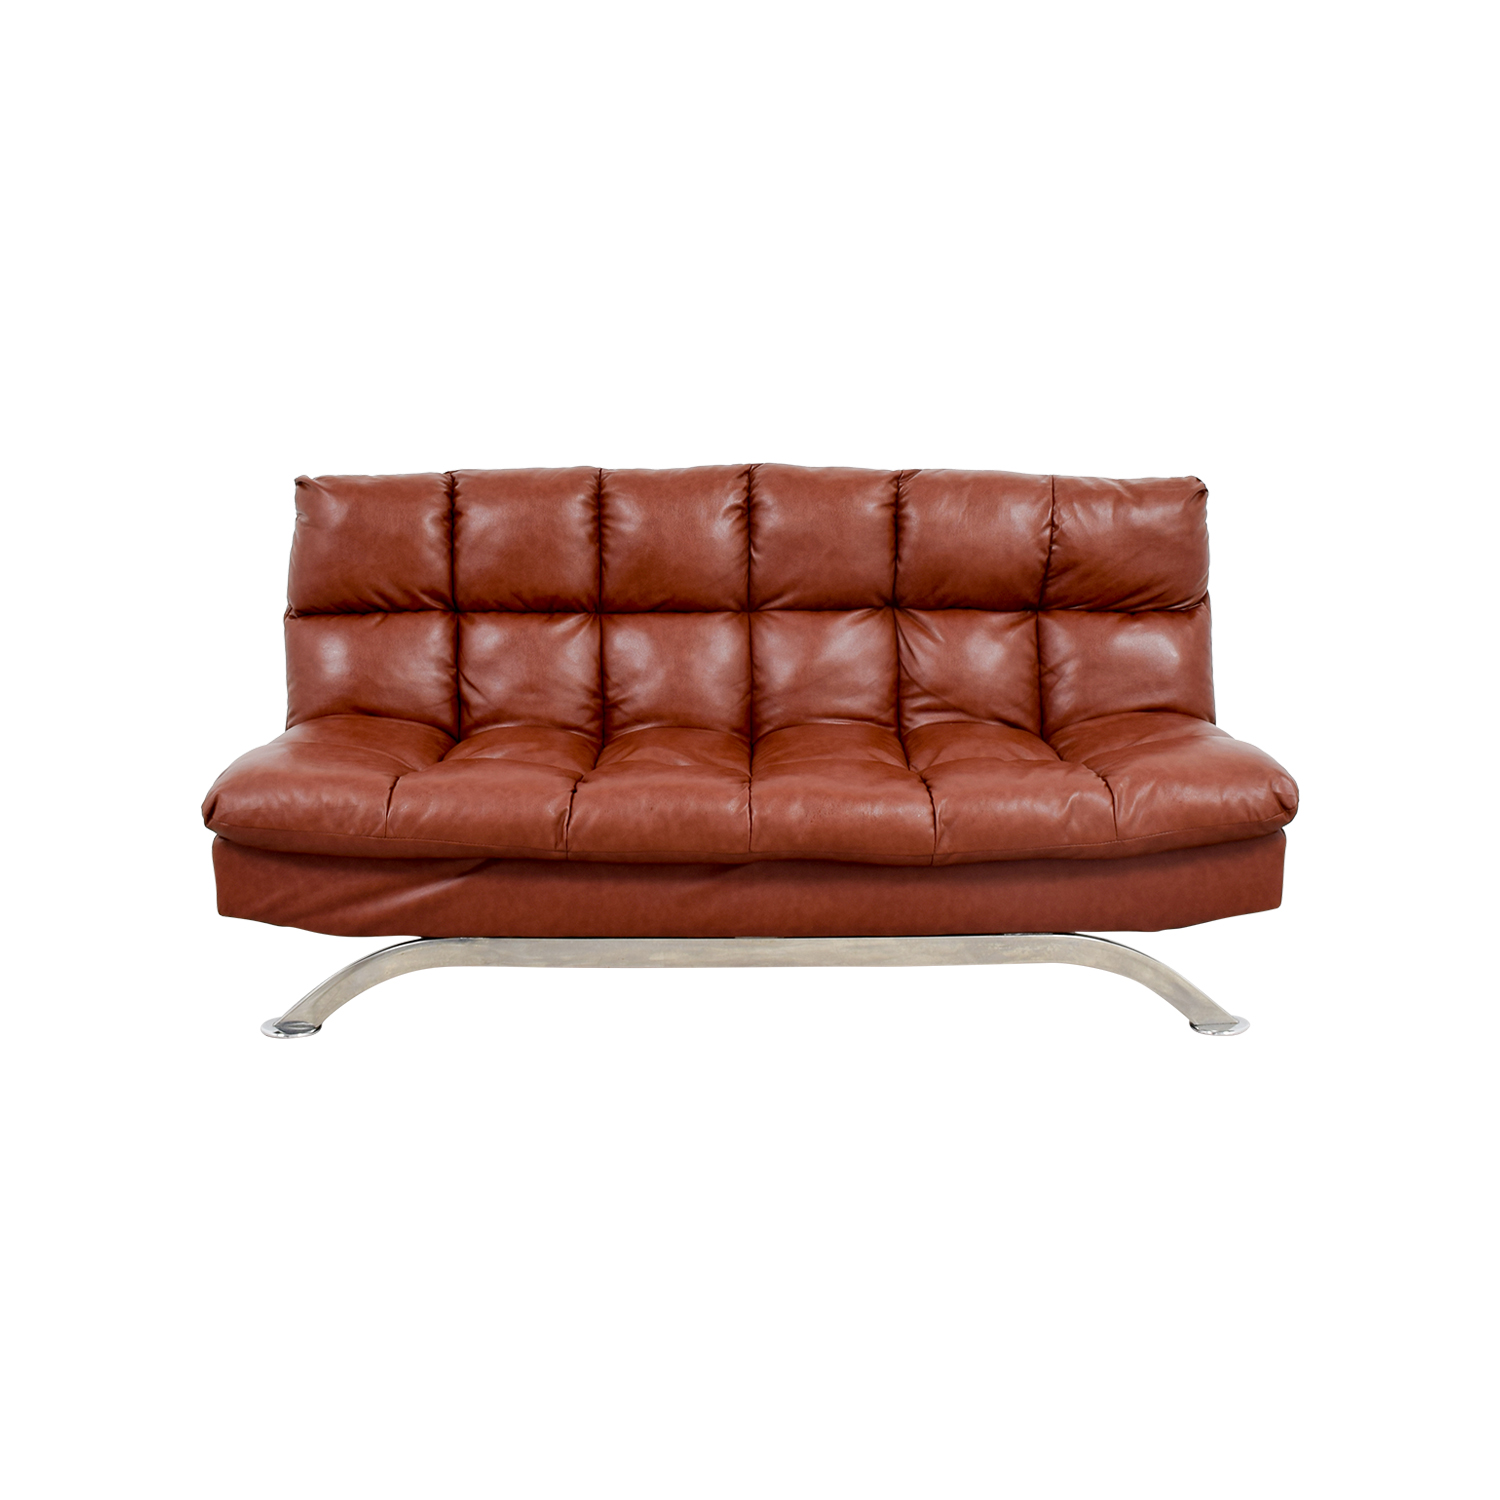 Pleasing 62 Off Wayfair Wayfair Brookeville Brown Leather Sleeper Futon Sofas Andrewgaddart Wooden Chair Designs For Living Room Andrewgaddartcom